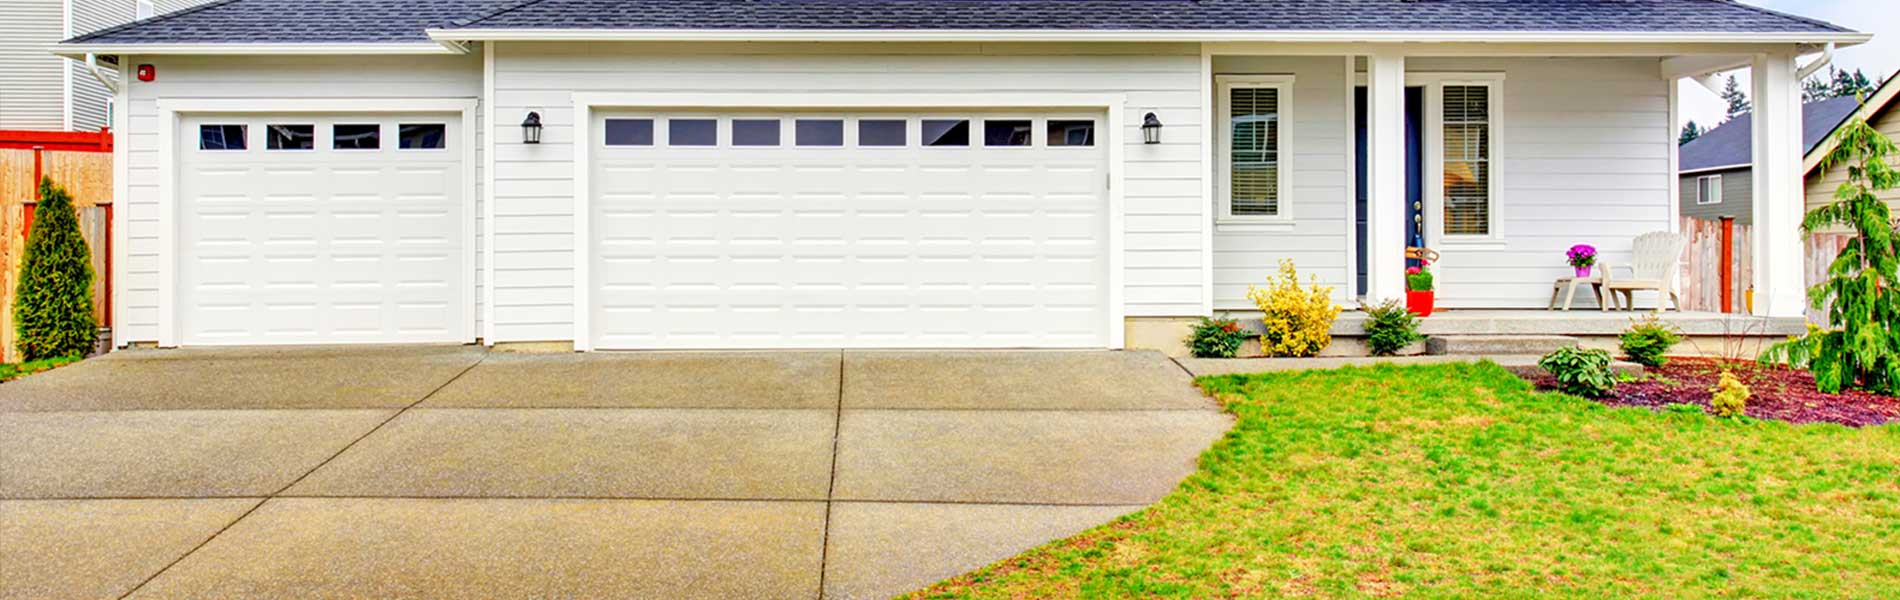 Garage Door 24 Hours Repairs, Mesa, AZ 877-470-1803